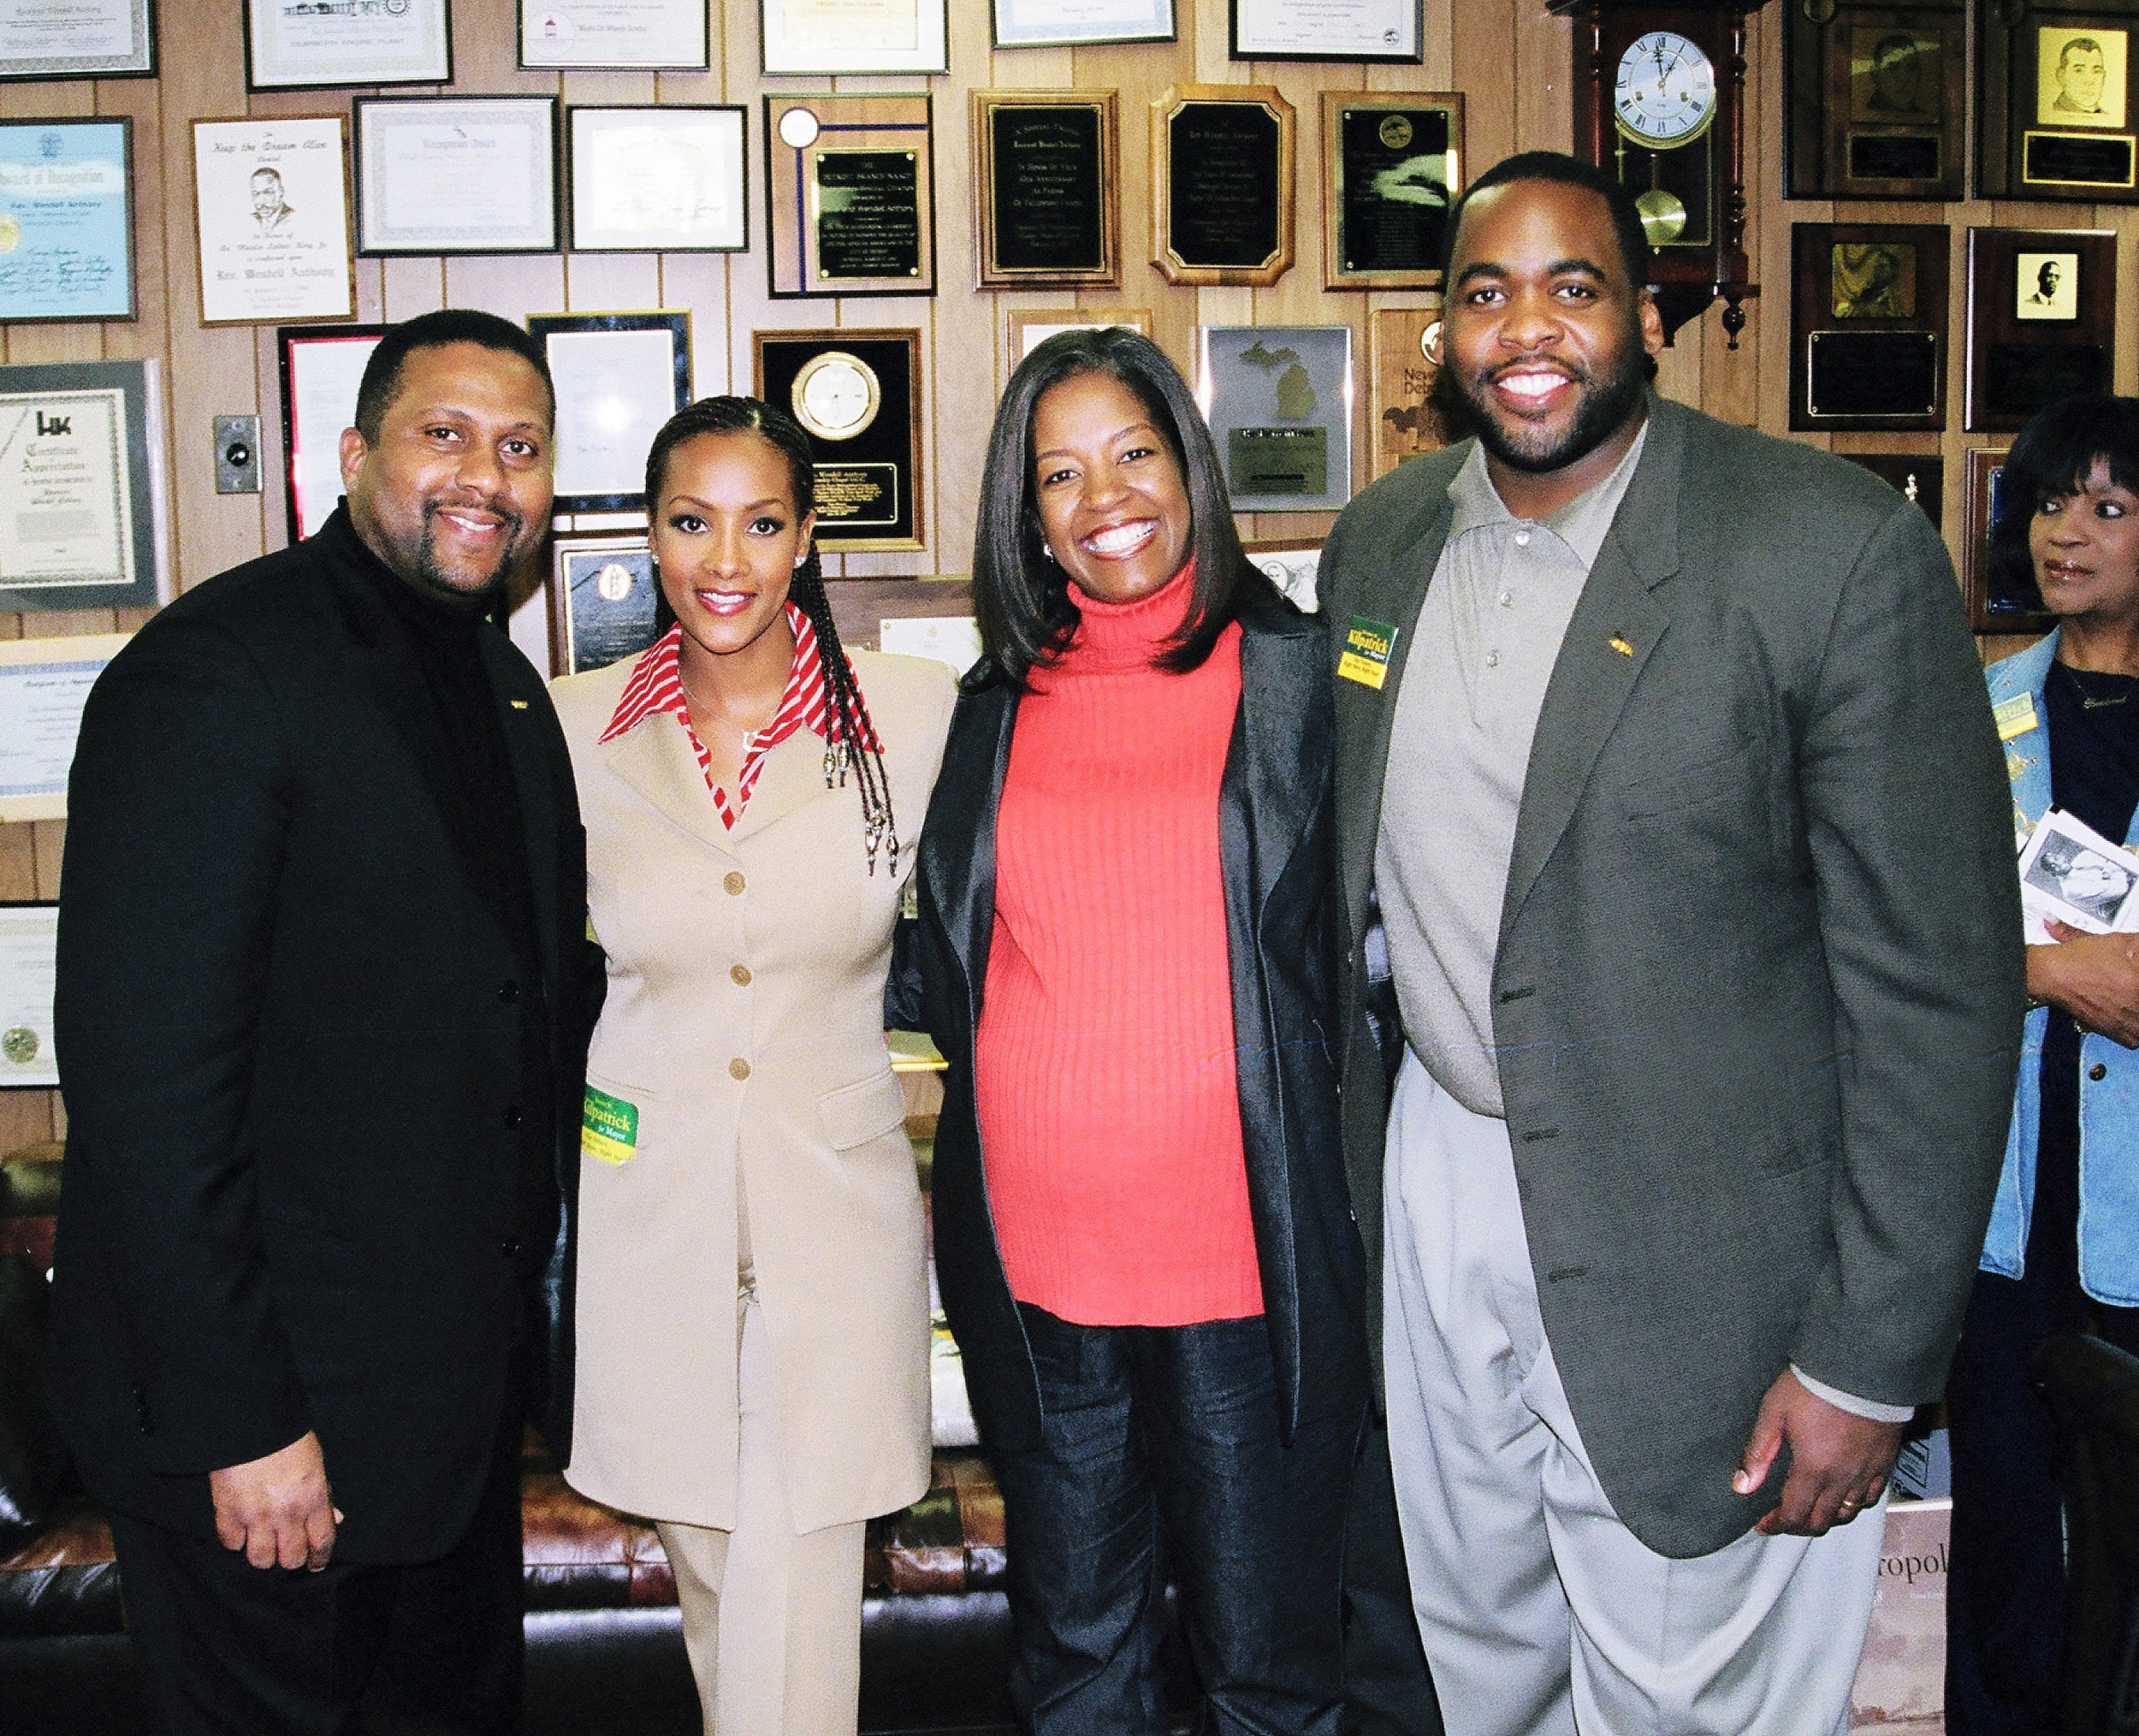 Kwame secured the endorsement of Vivica A. Fox, pictured here with Kwame and his wife, Carlita.  Courtesy of Tim and Tobias Smith.